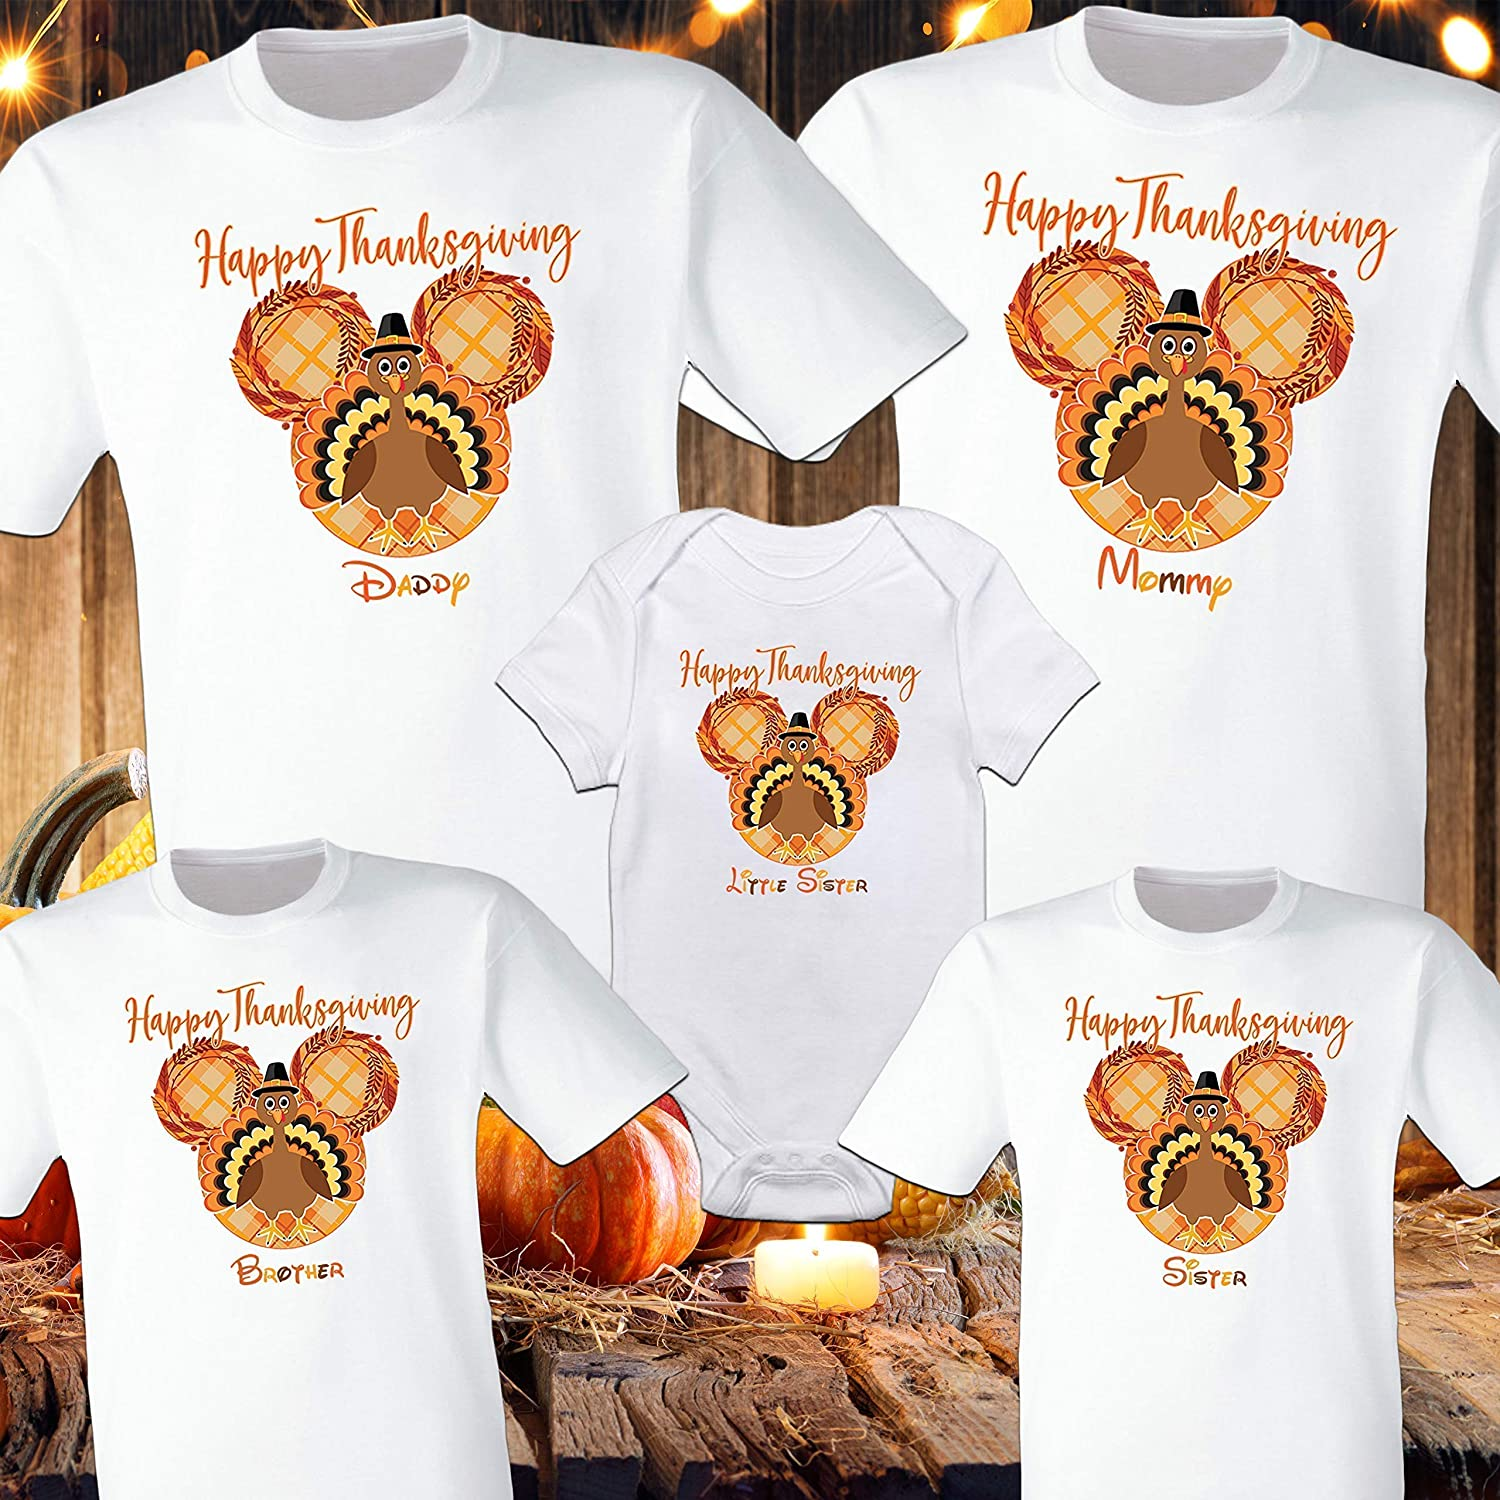 Thanksgiving T-shirts reflect your style